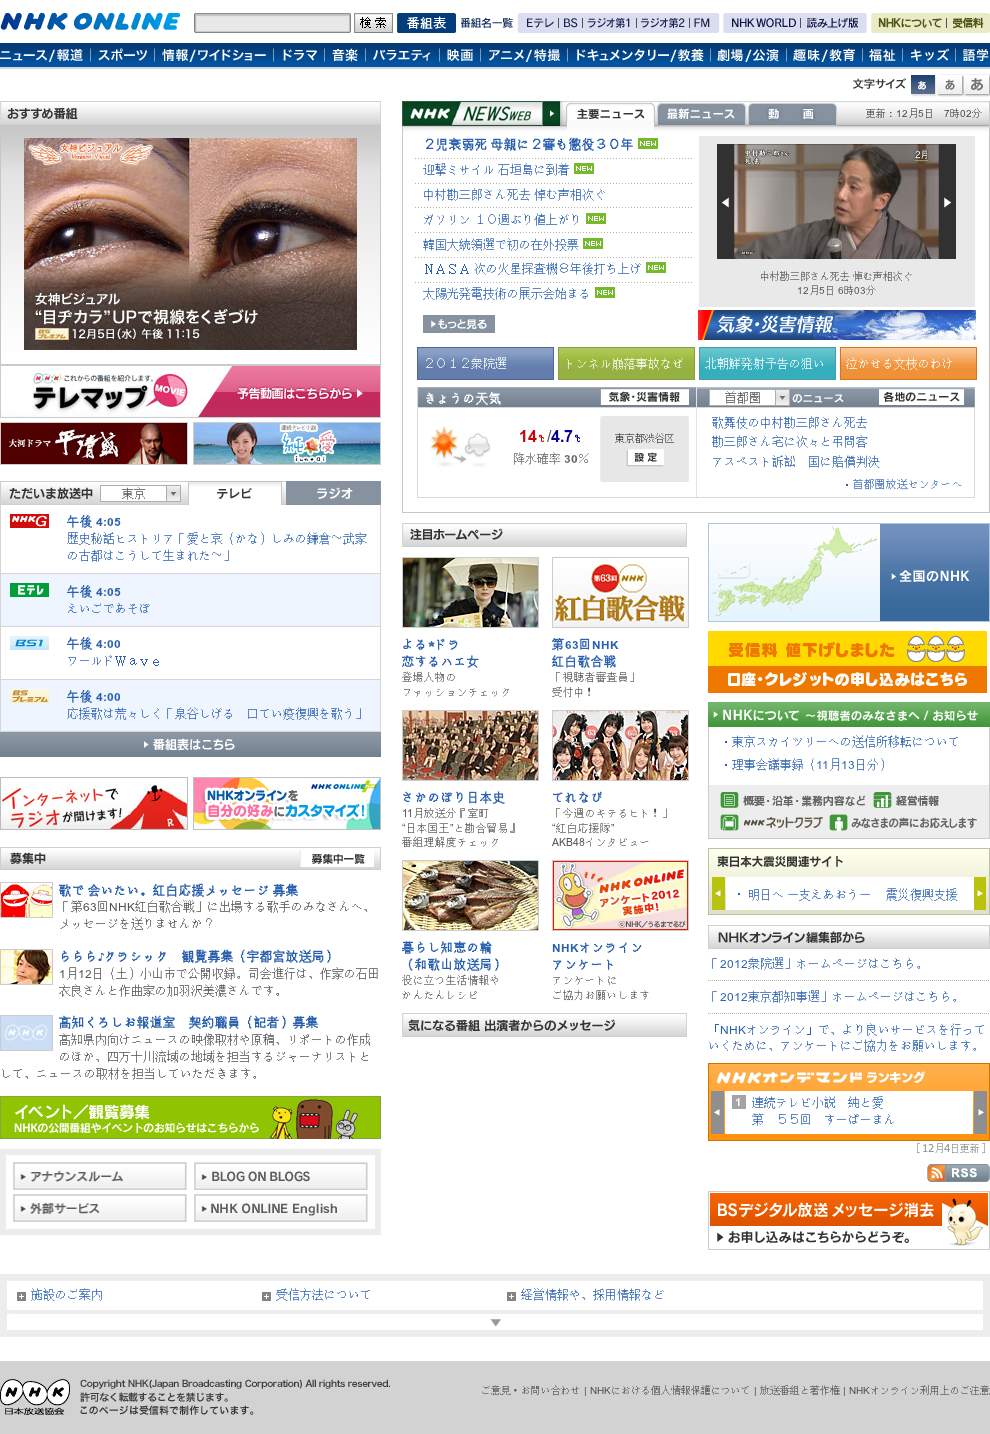 NHK Online at Wednesday Dec. 5, 2012, 7:22 a.m. UTC